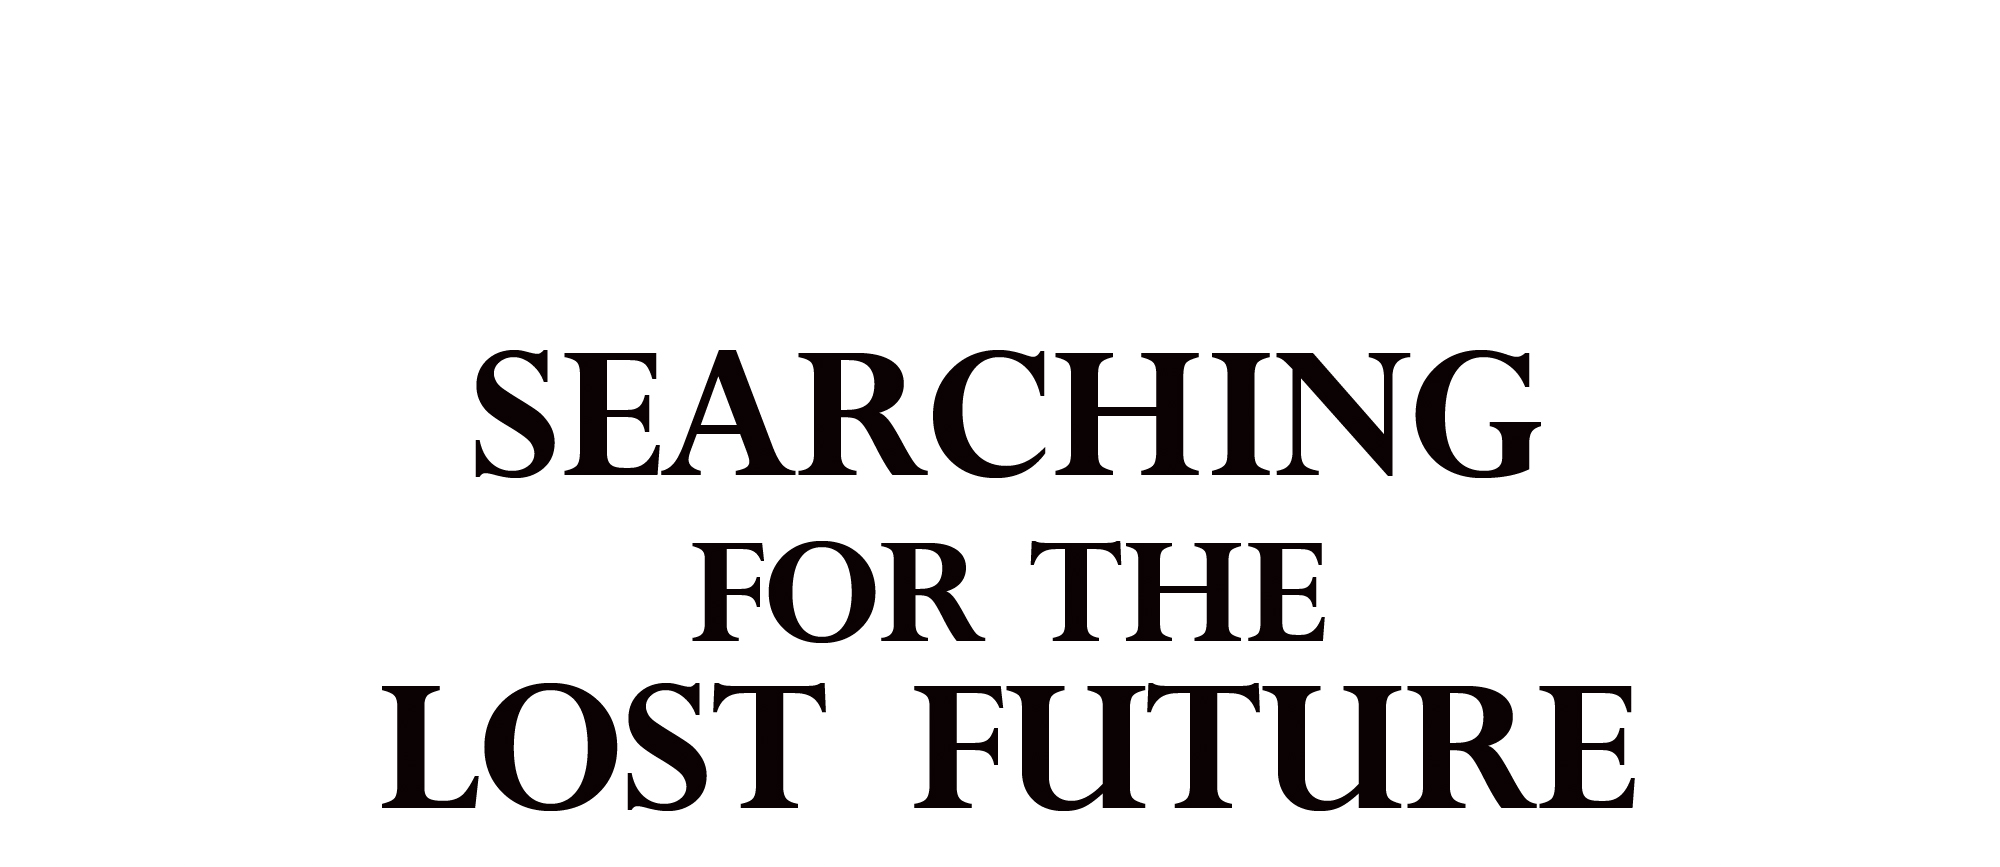 searchinglost